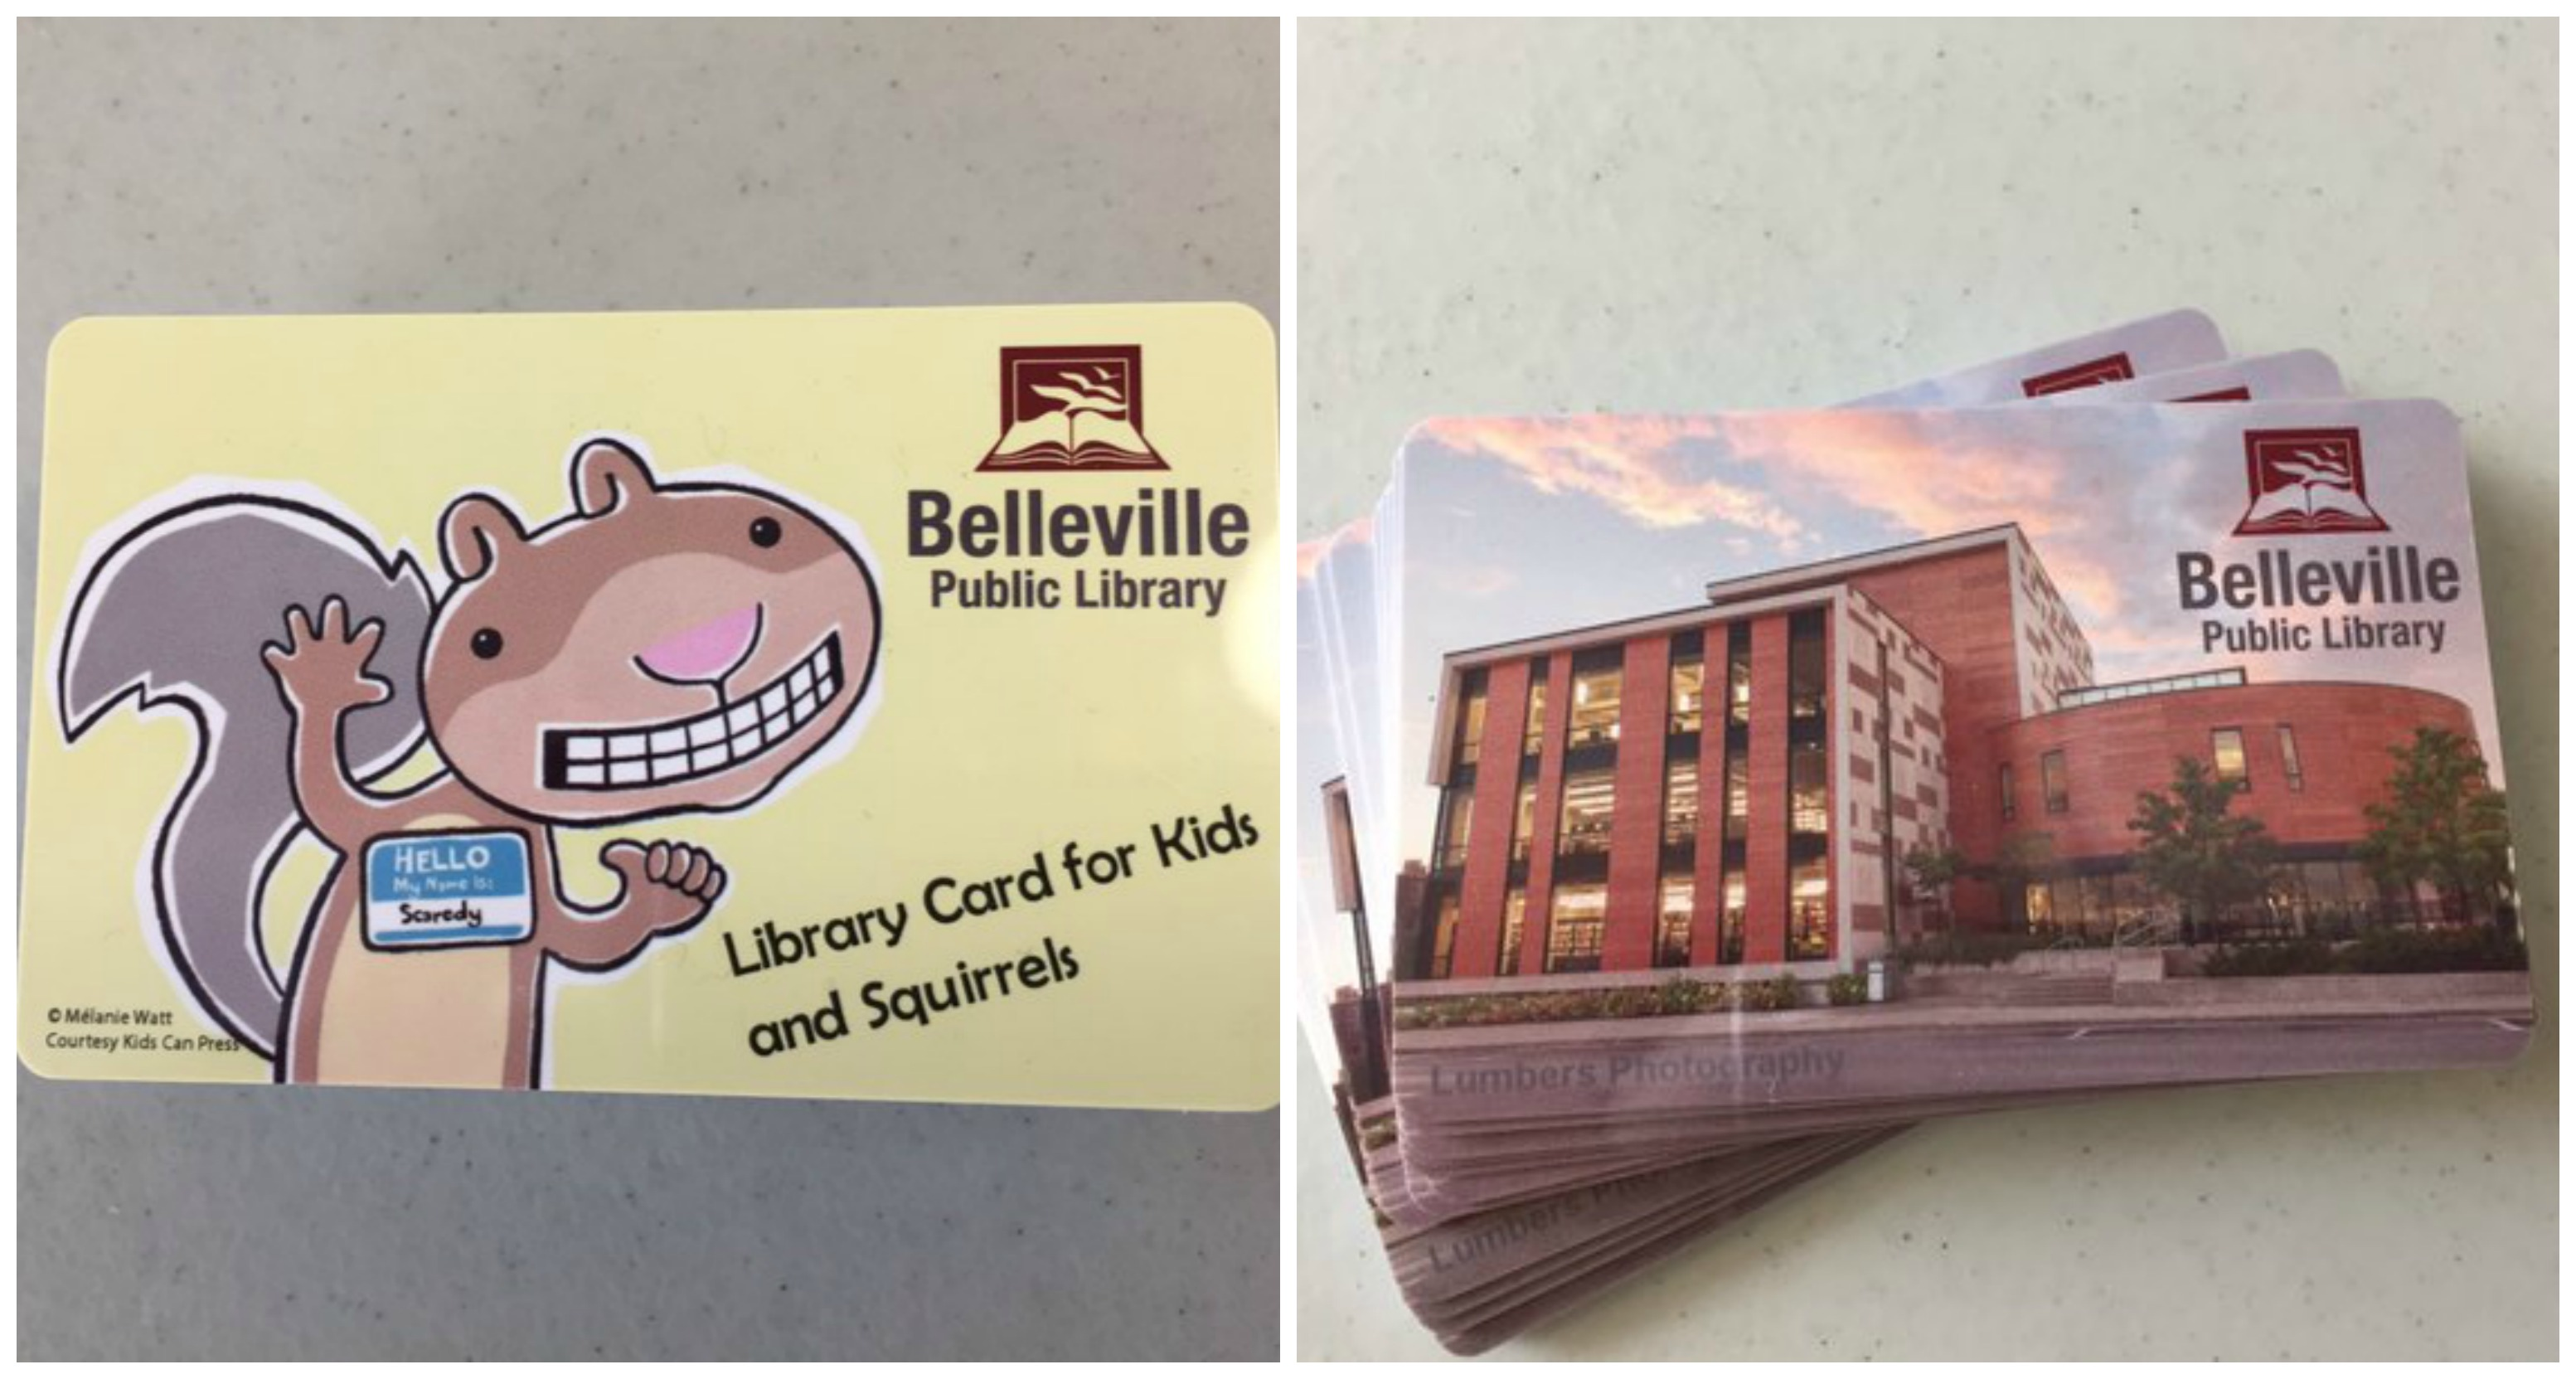 The Belleville Public Library now offers visitors a choice of which library card they would like to sign up with. Photos by Tara Henley.